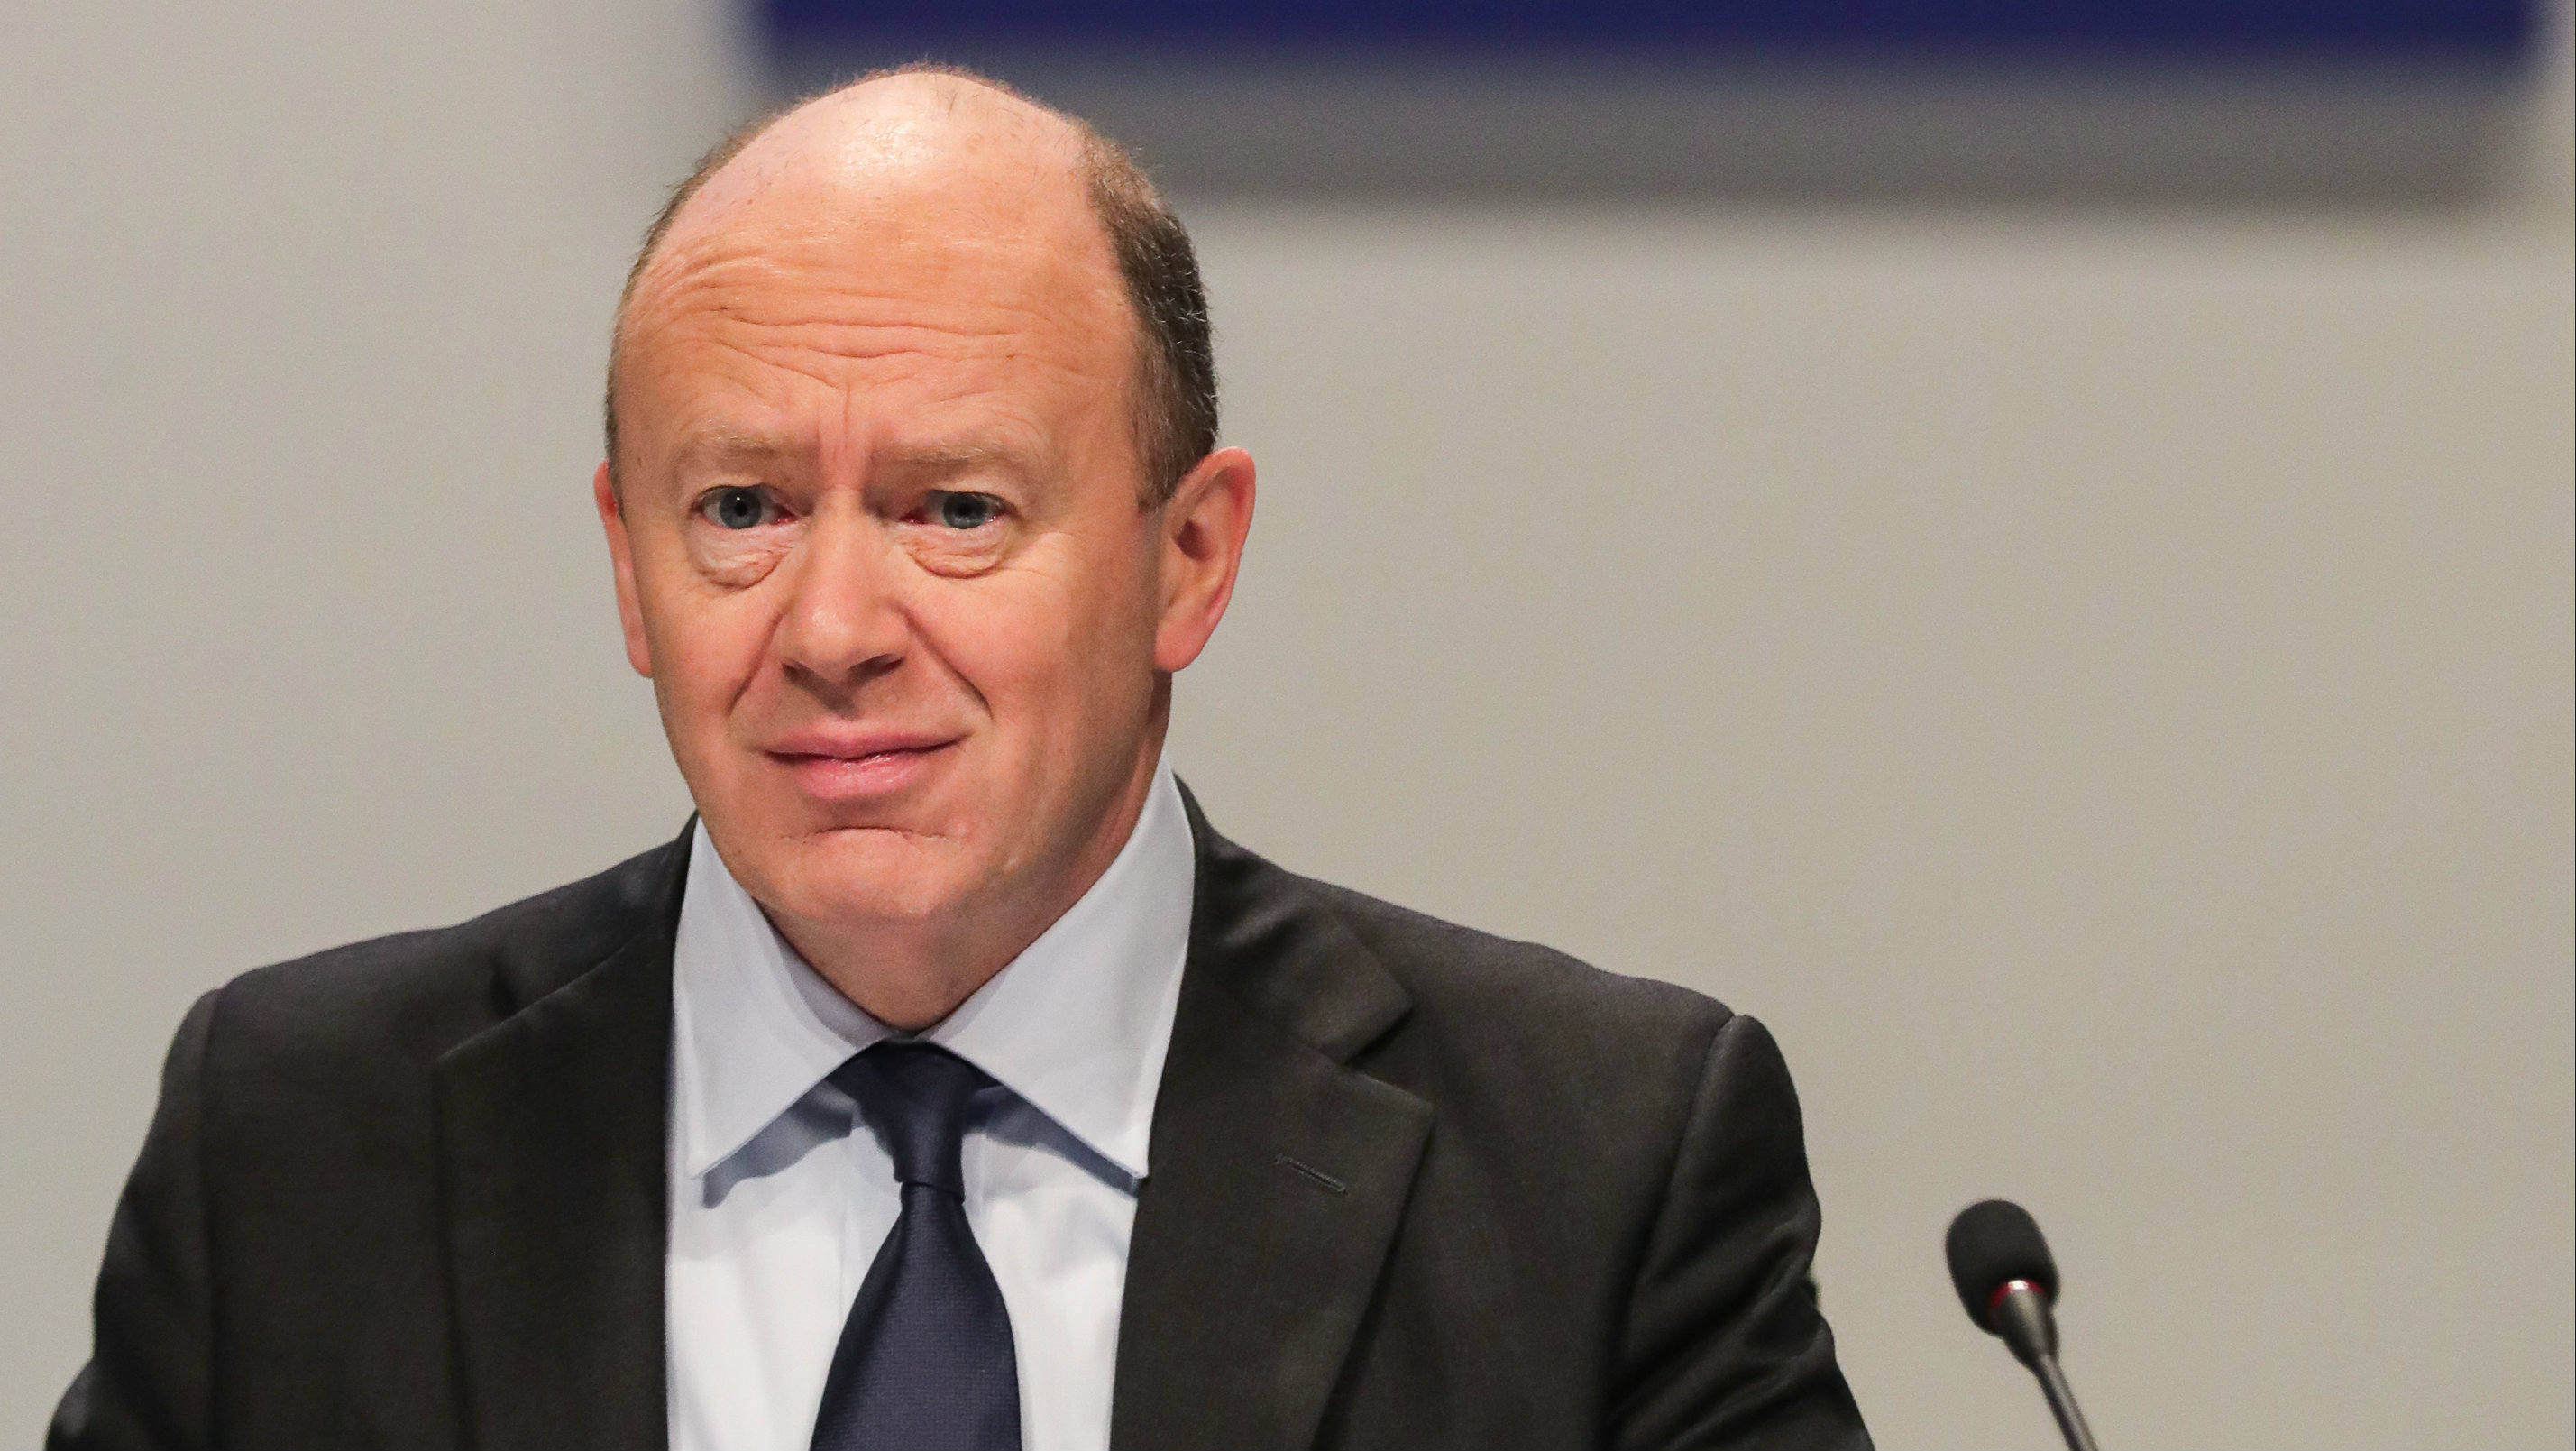 Deutsche Bank CEO John Cryan during the Deutsche Bank Annual General Meeting 2017 in Frankfurt Main, Germany, 18 May 2017. Deutsche Bank state that the meeting is being help for the presentation of the established Annual Financial Statements and Management Report for the 2016 financial year, the approved Consolidated Financial Statements and Management Report for the 2016 financial year as well as the Report of the Supervisory Board.